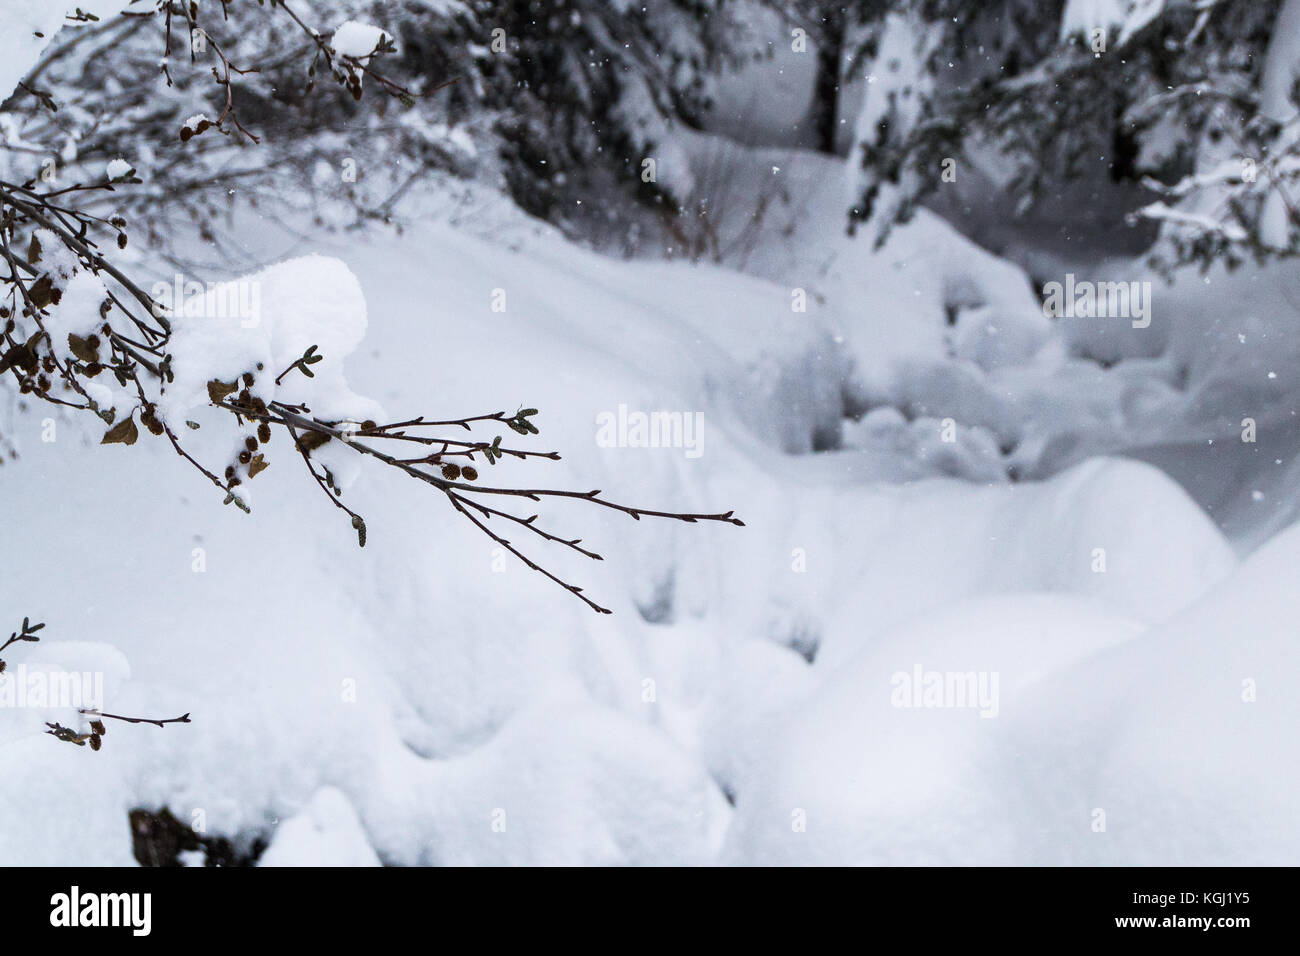 Snow covered branch in a winter forest scene. Les Arcs. Savoie. France - Stock Image